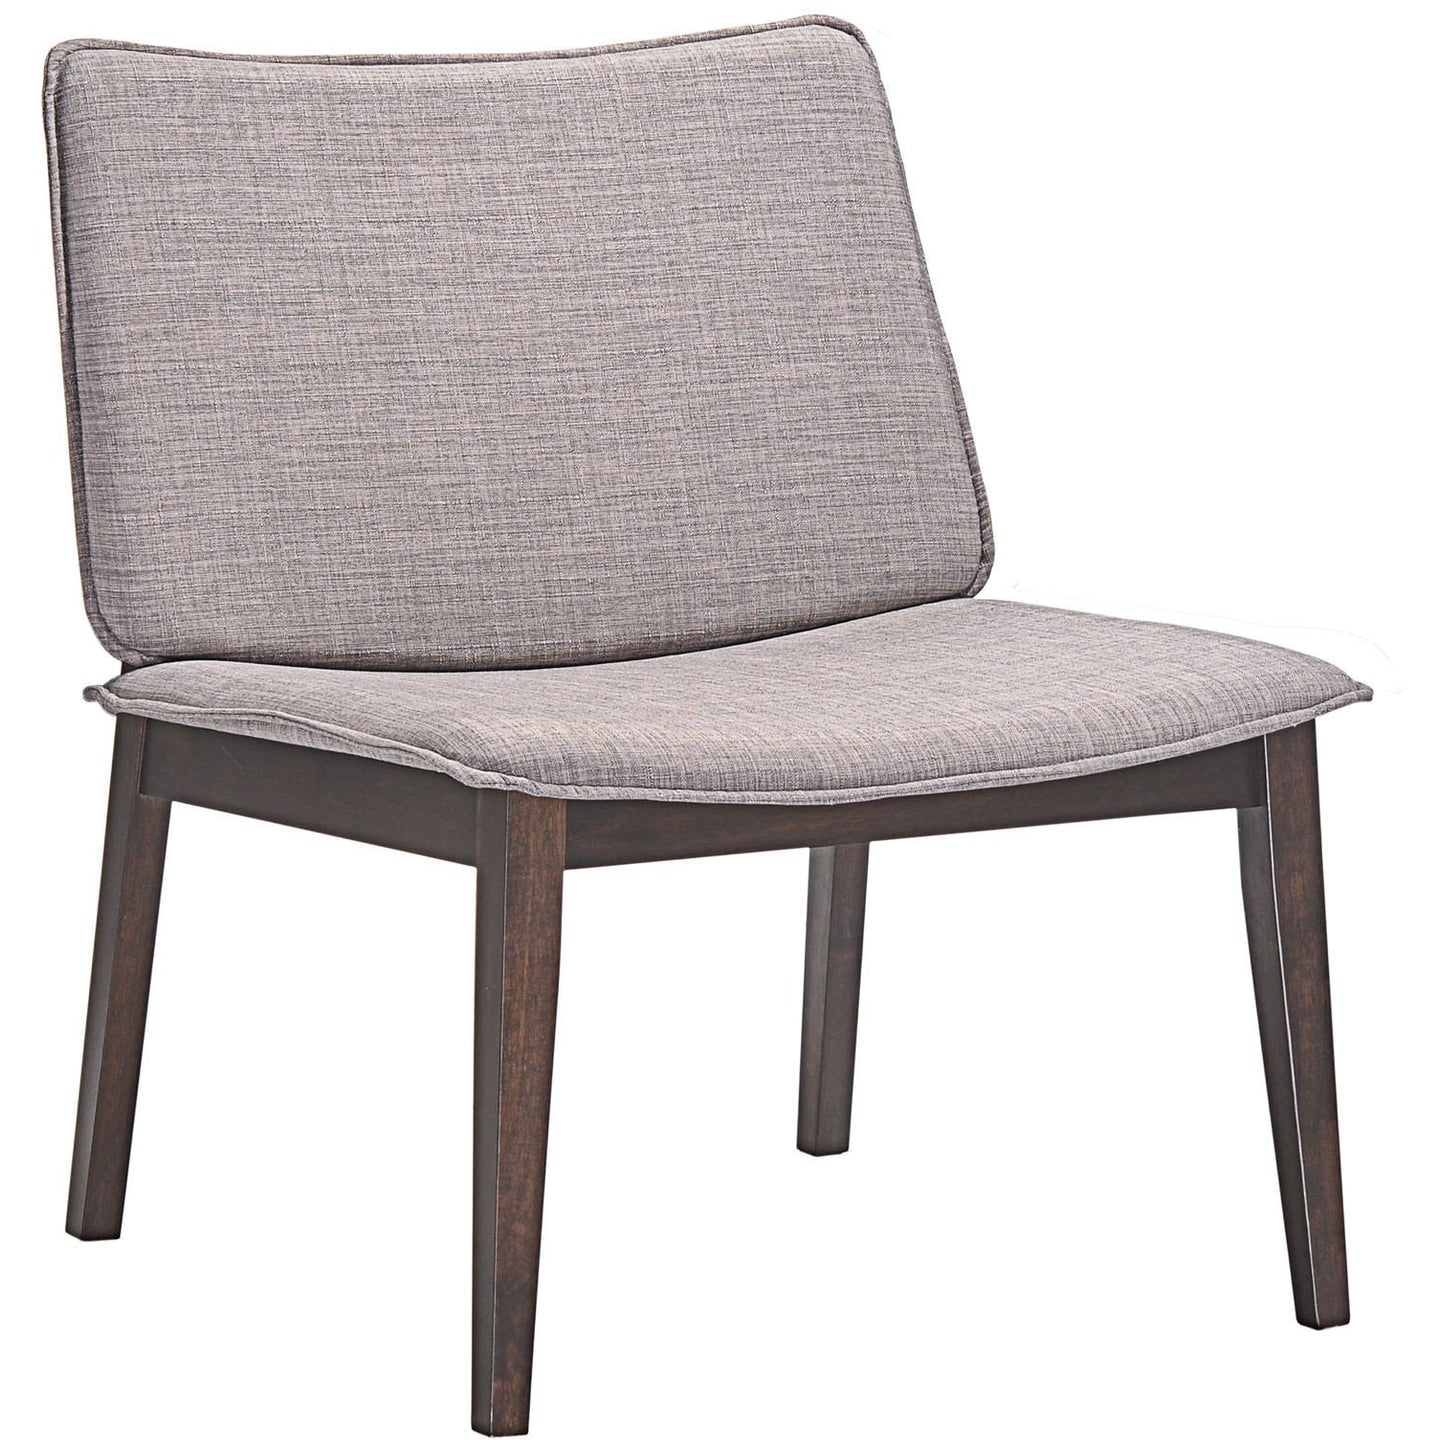 Modway Furniture Modern Evade Lounge Chair EEI-1612-Minimal & Modern